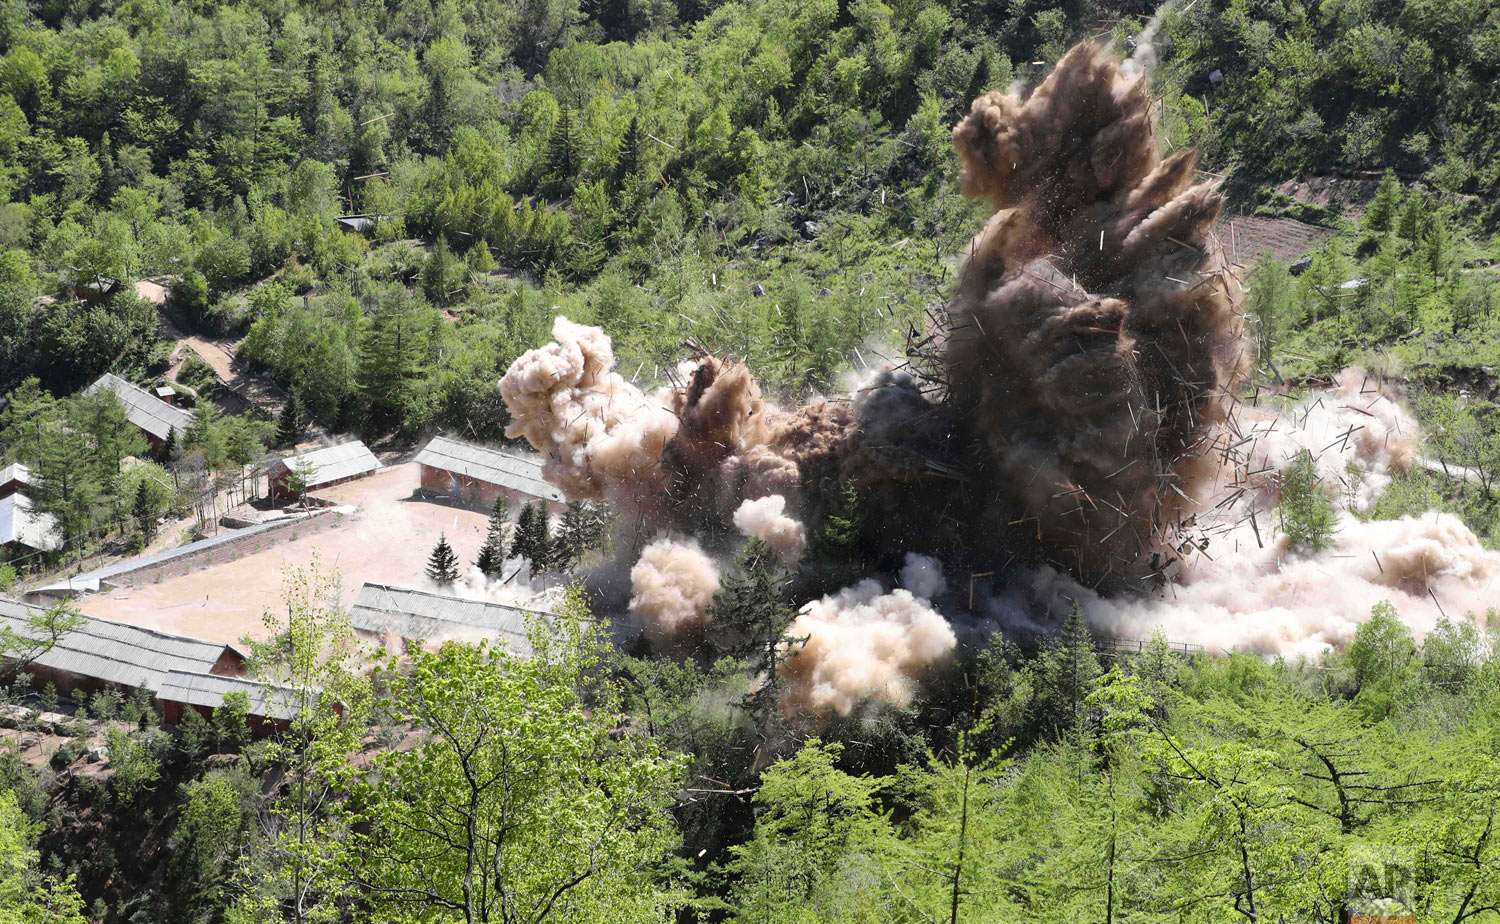 """Command post facilities of North Korea's nuclear test site are exploded in Punggye-ri, North Korea on Thursday, May 24, 2018. North Korea said Friday that it's still willing to sit for talks with the United States """"at any time, (in) any format,"""" a remarkably restrained and diplomatic response, from a nation noted for its proud belligerence, to U.S. President Donald Trump's abrupt cancellation of a summit with the North's autocratic leader, Kim Jong Un. (Korea Pool/Yonhap via AP)"""